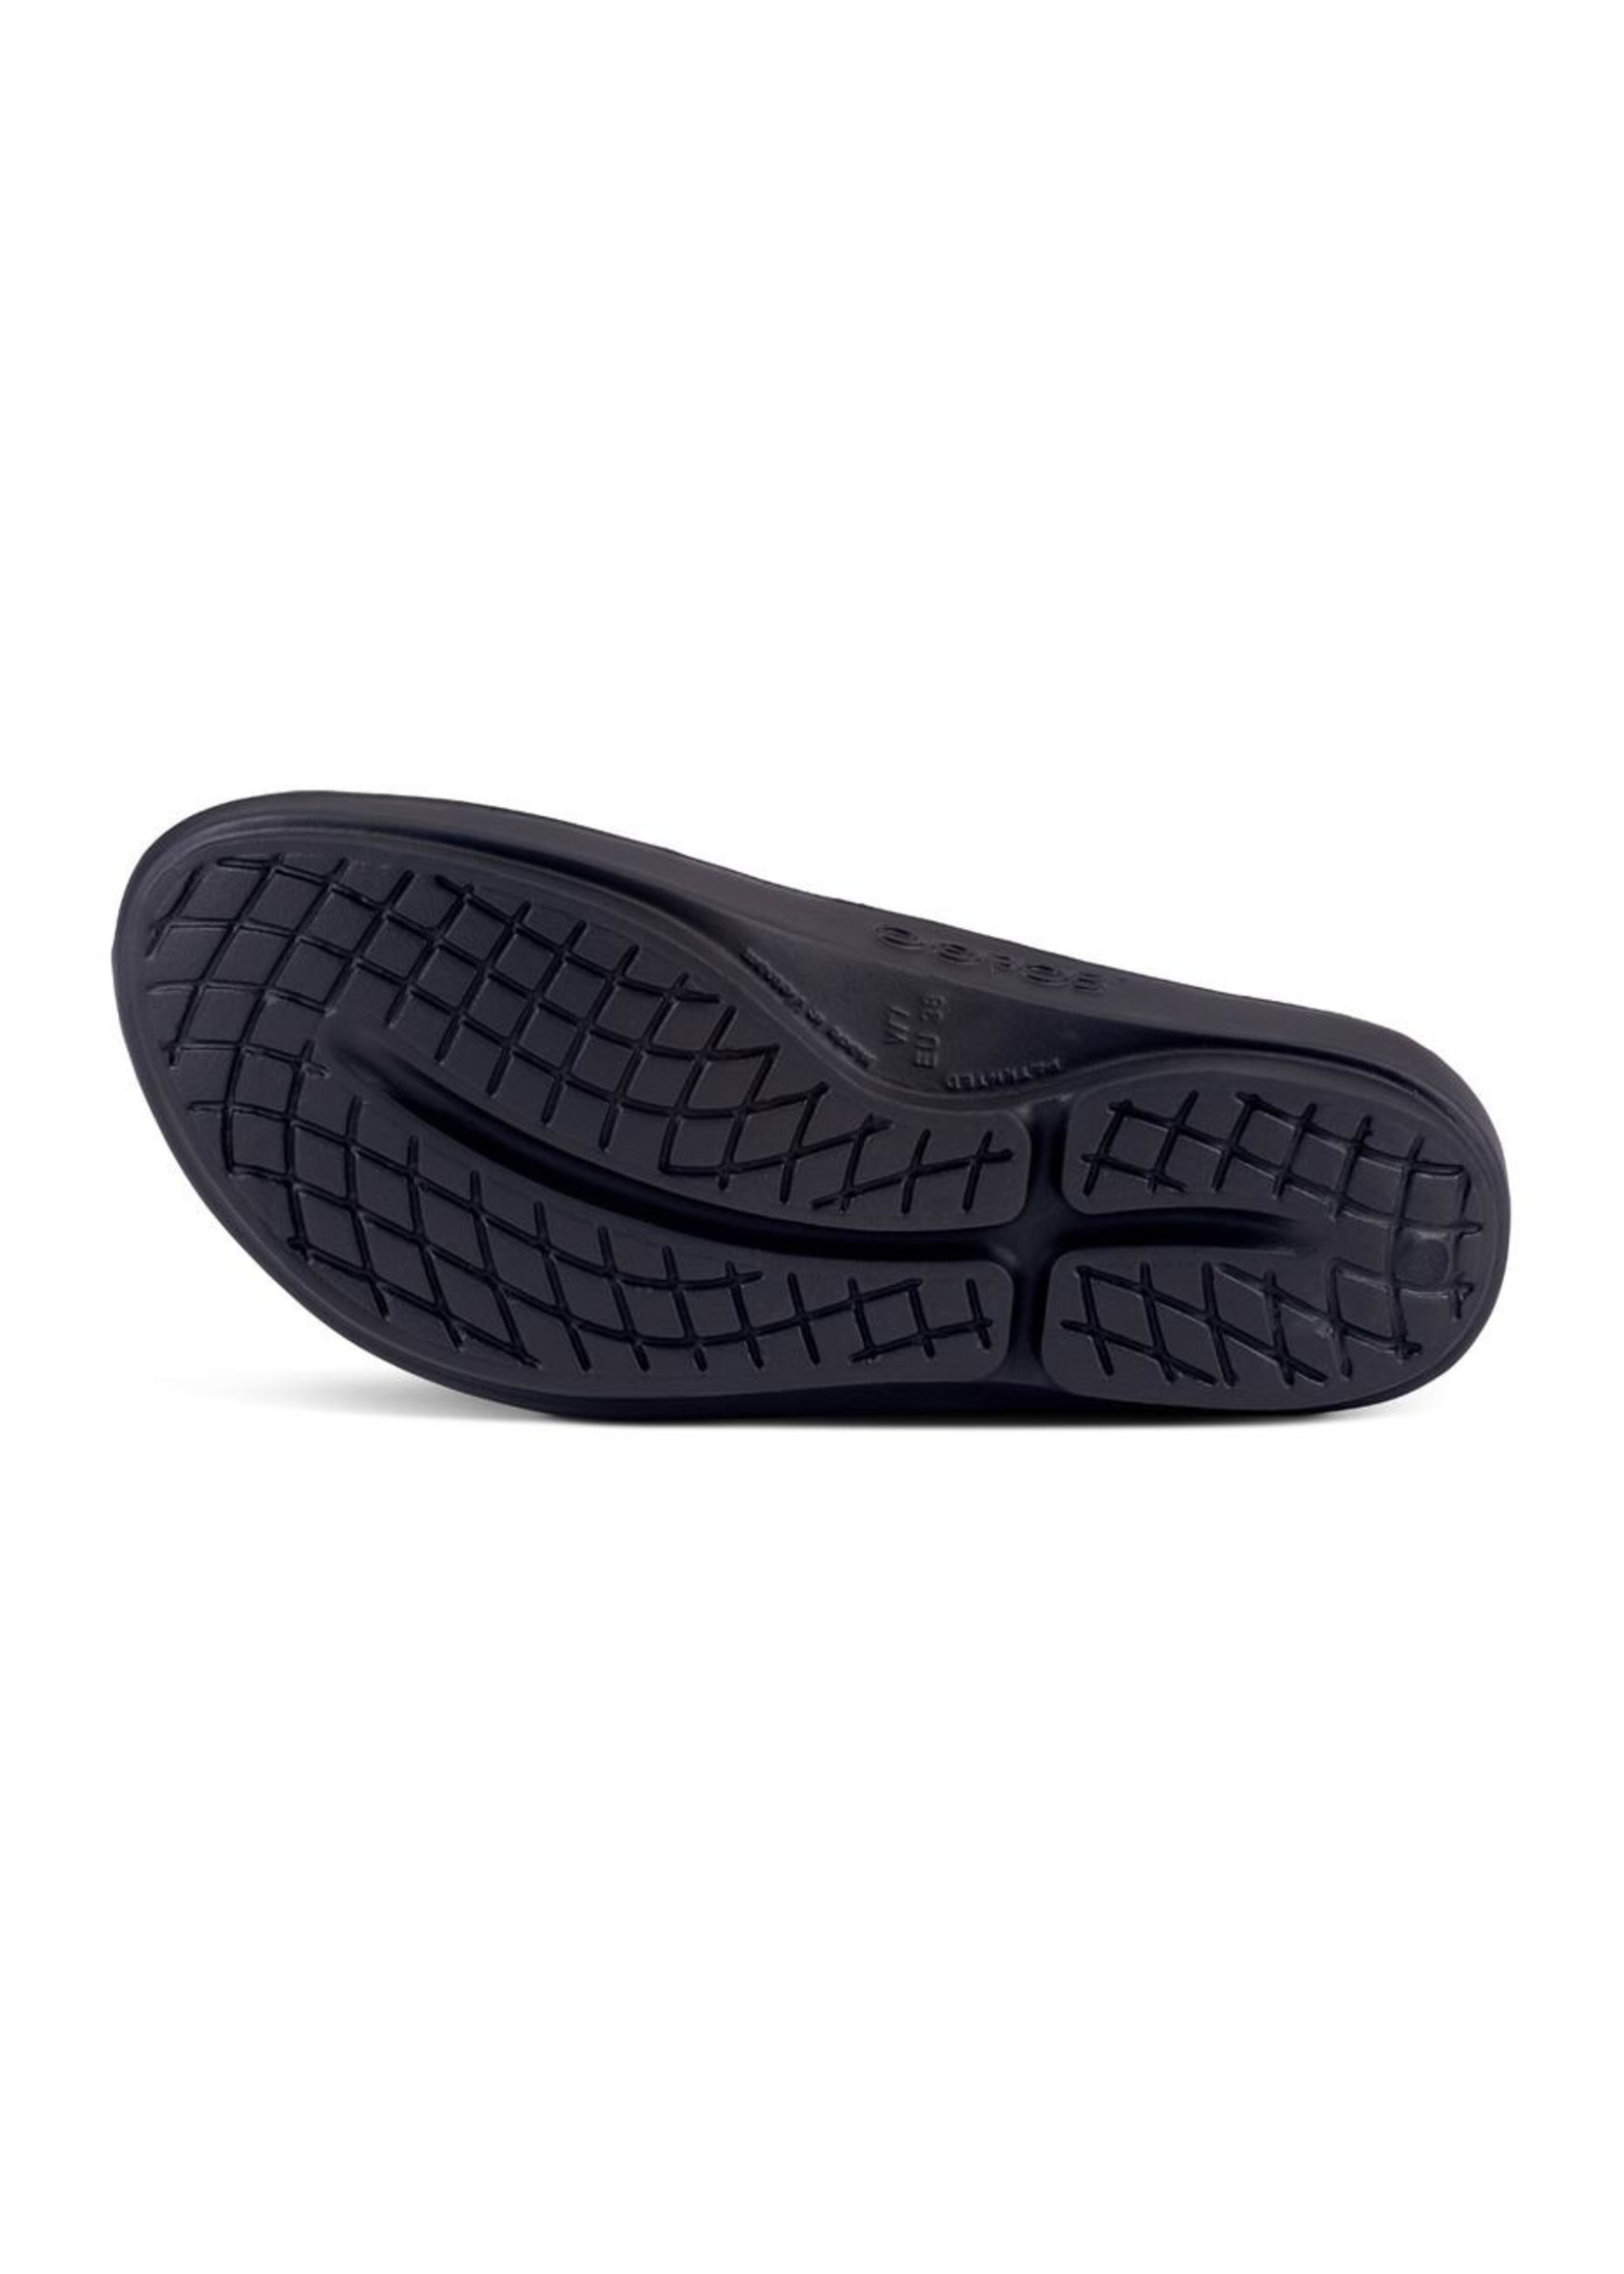 OOFOS Women's OOlala Limited Sandal